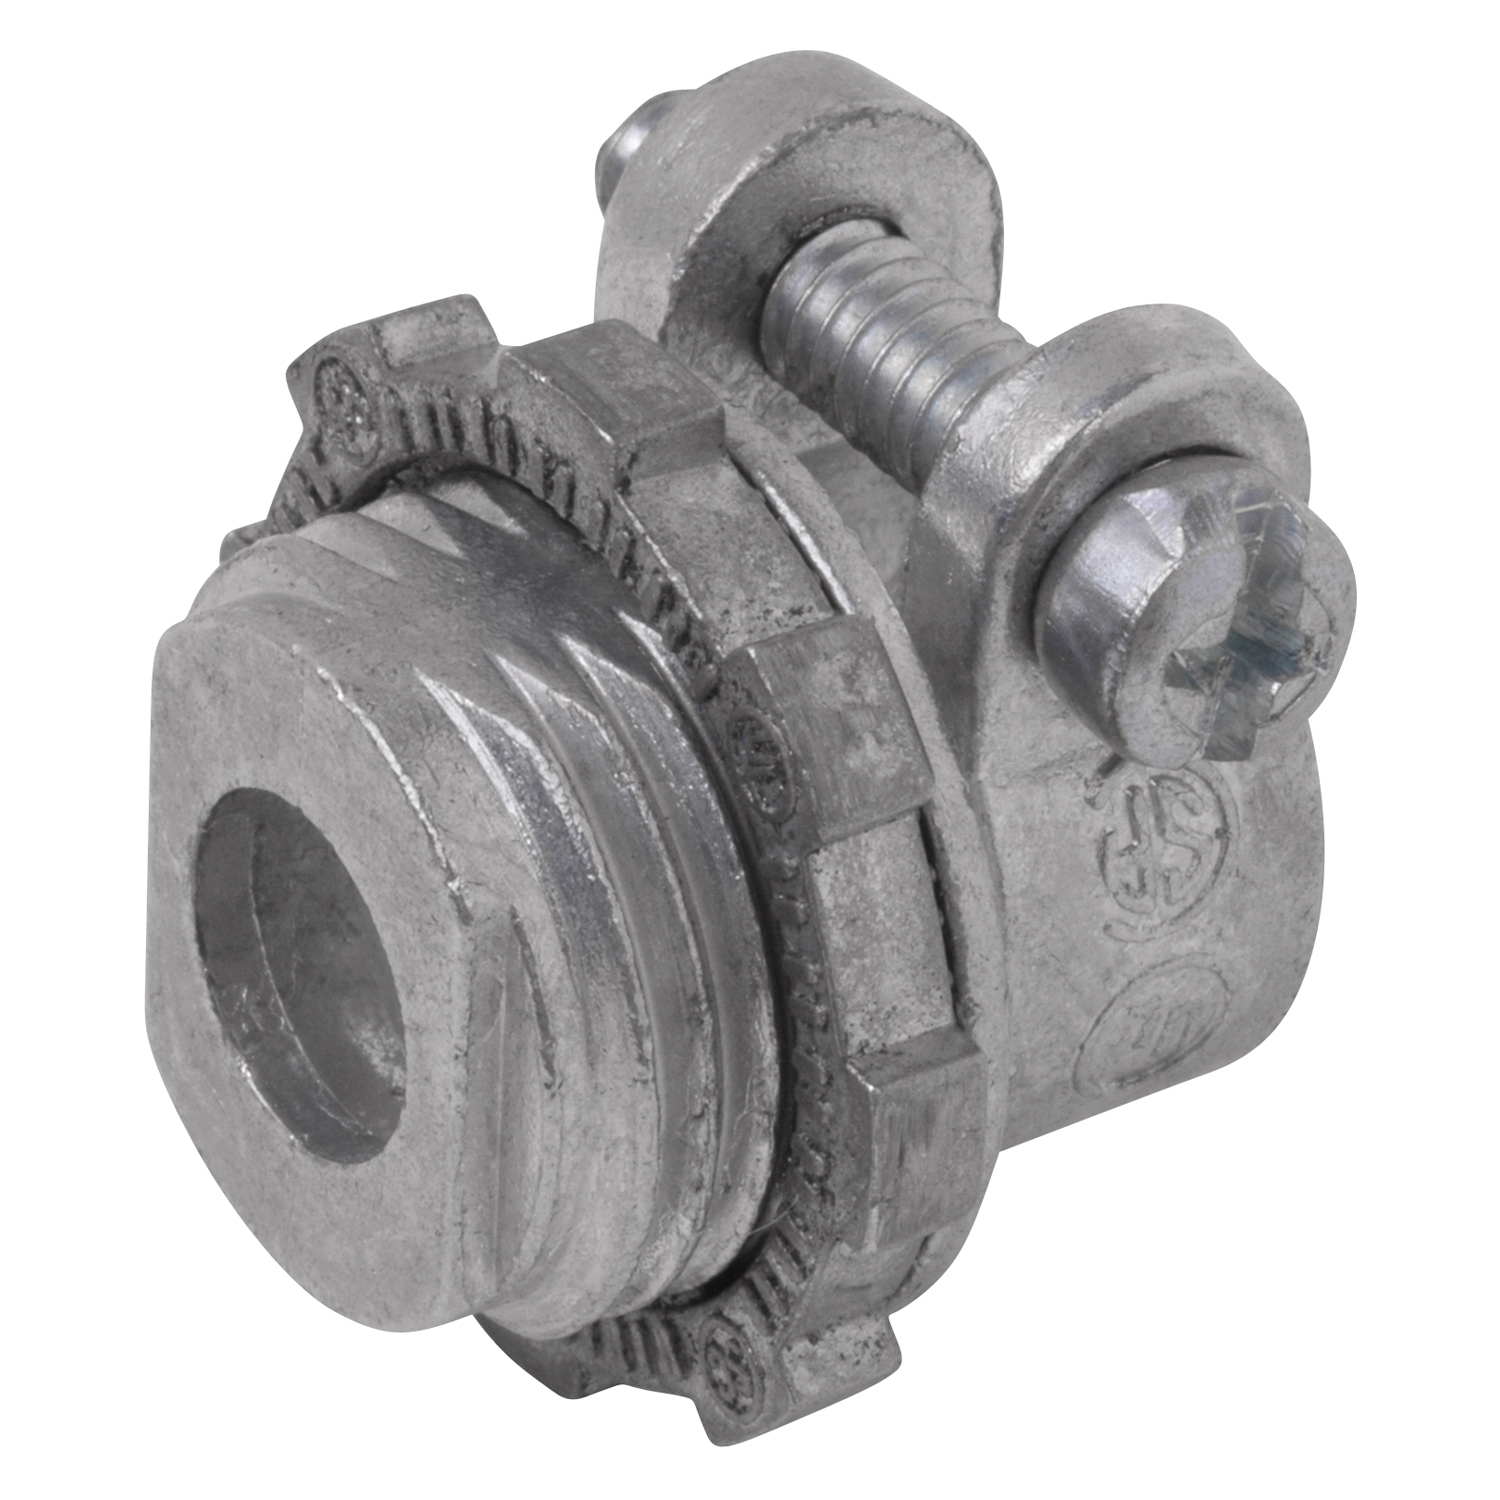 Thomas & Betts XC901 Flex Connector